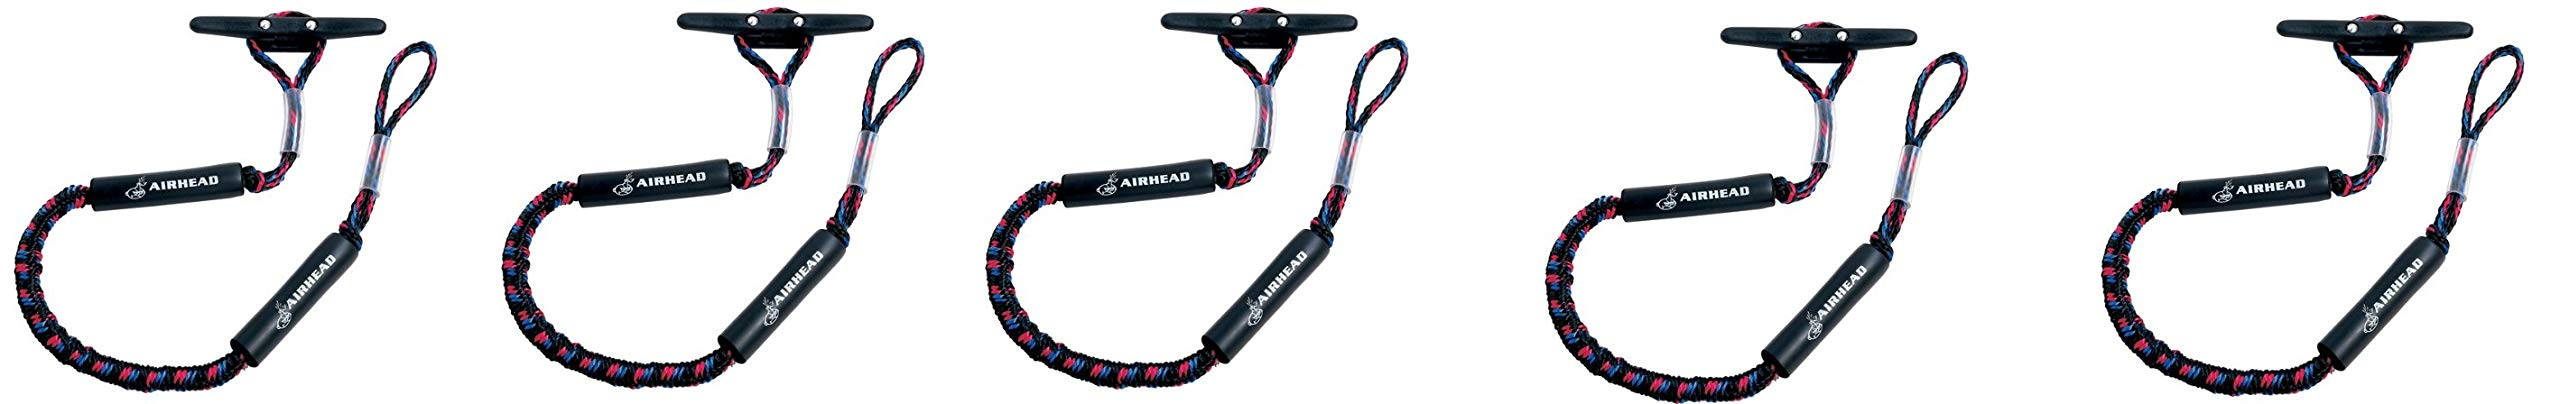 Airhead AHDL-4 Bungee Dockline 4 Feet (Pack of 5) by Airhead (Image #1)